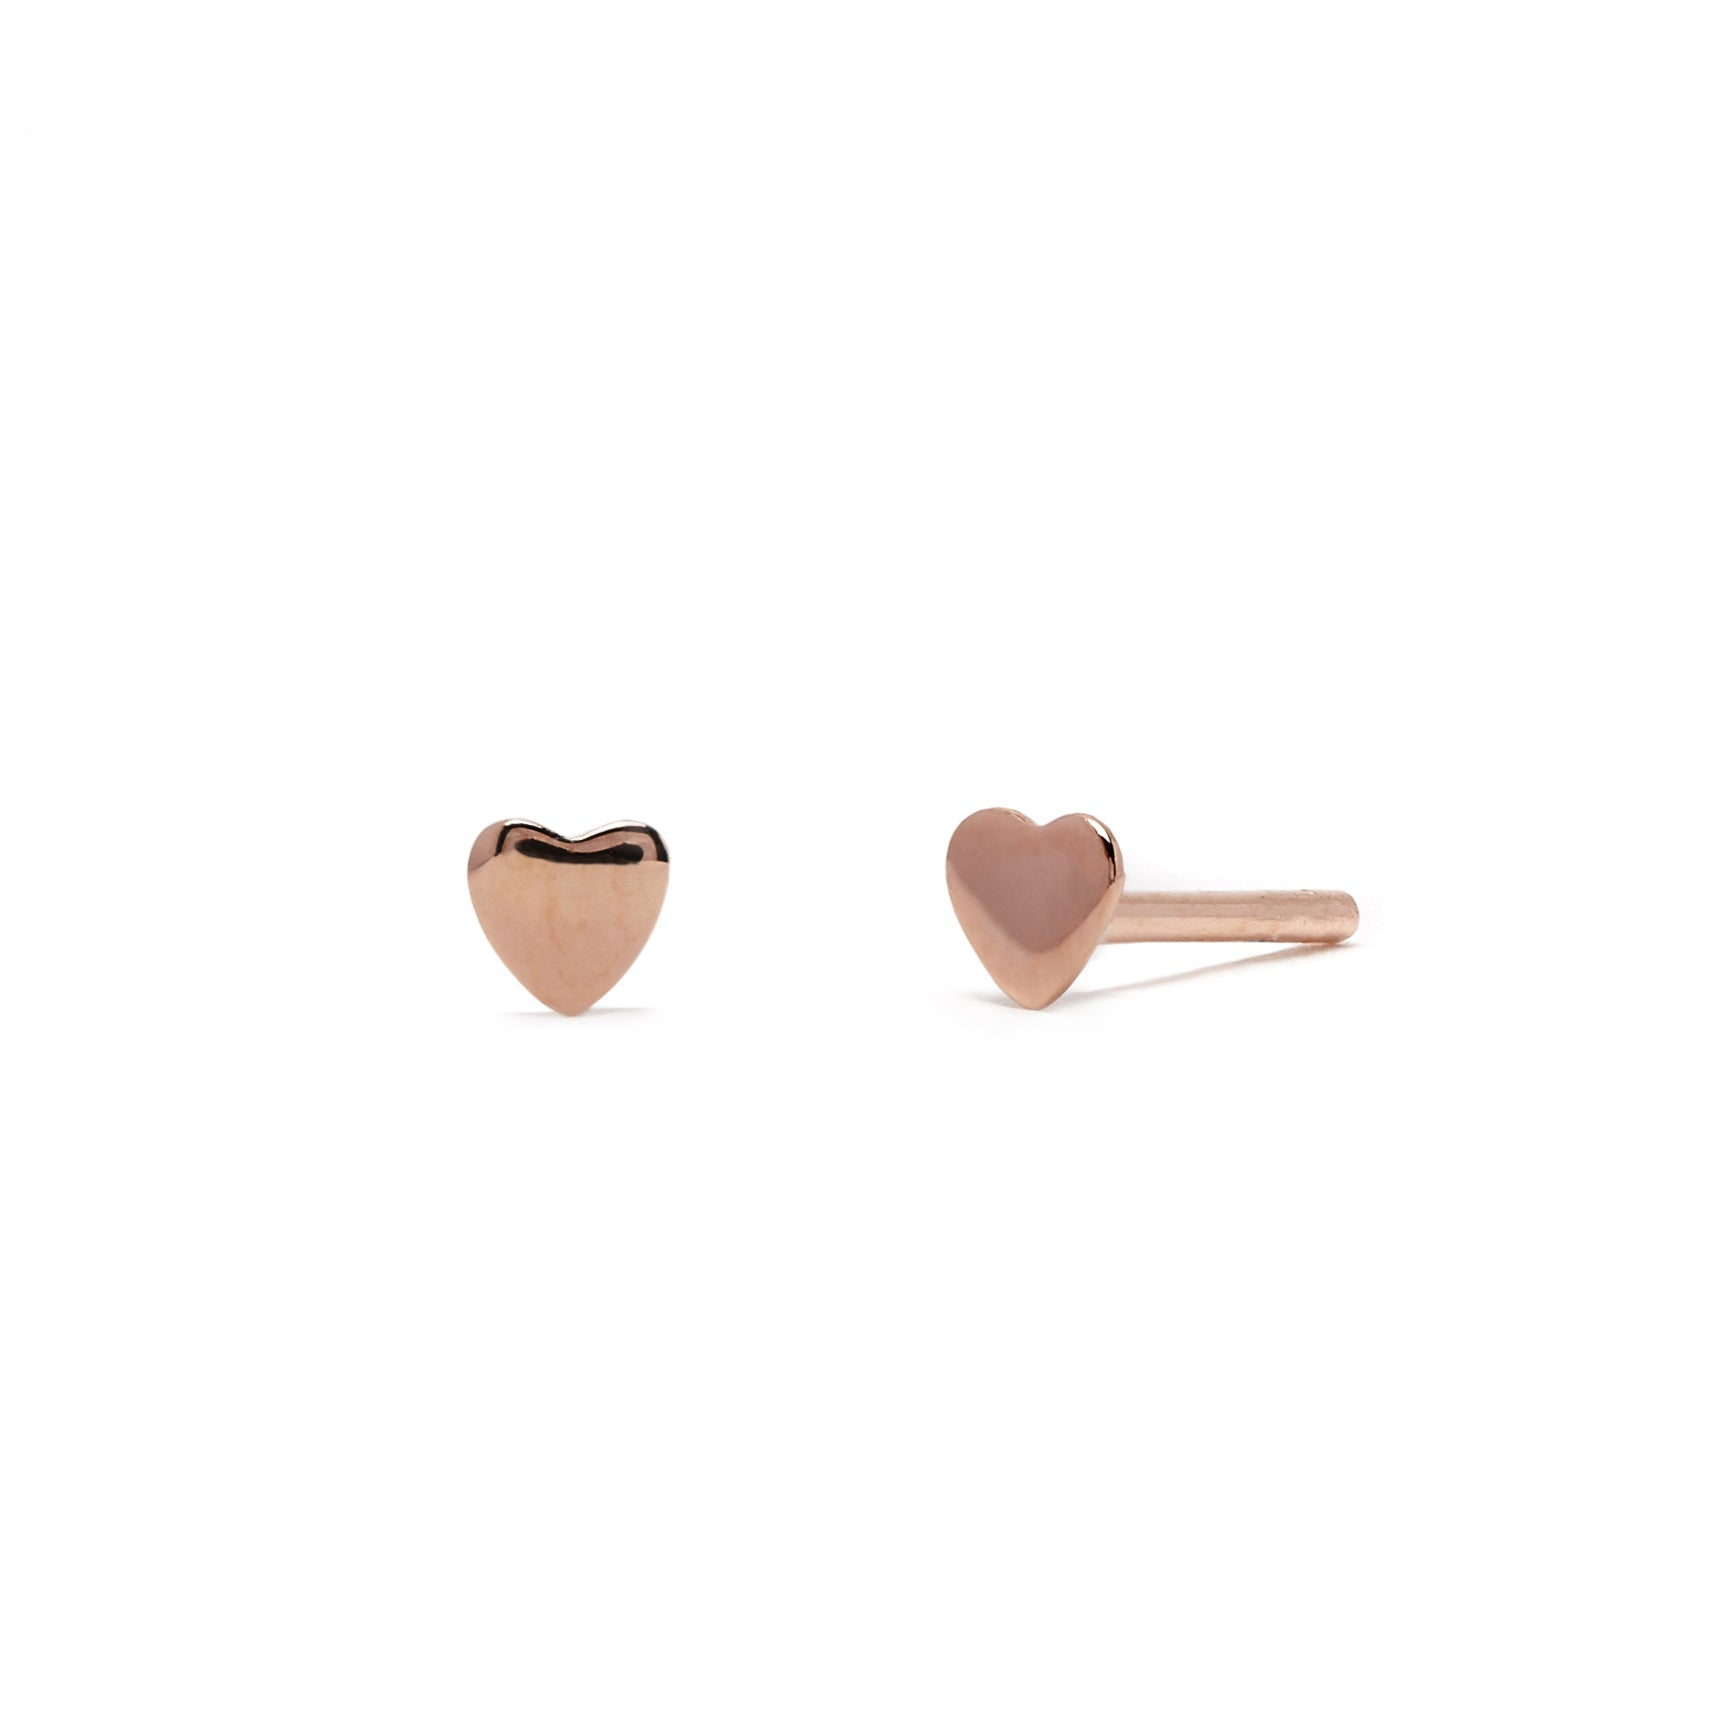 Love Heart - Earring - Rose Gold - Stud - Single - Louise Varberg Jewellery